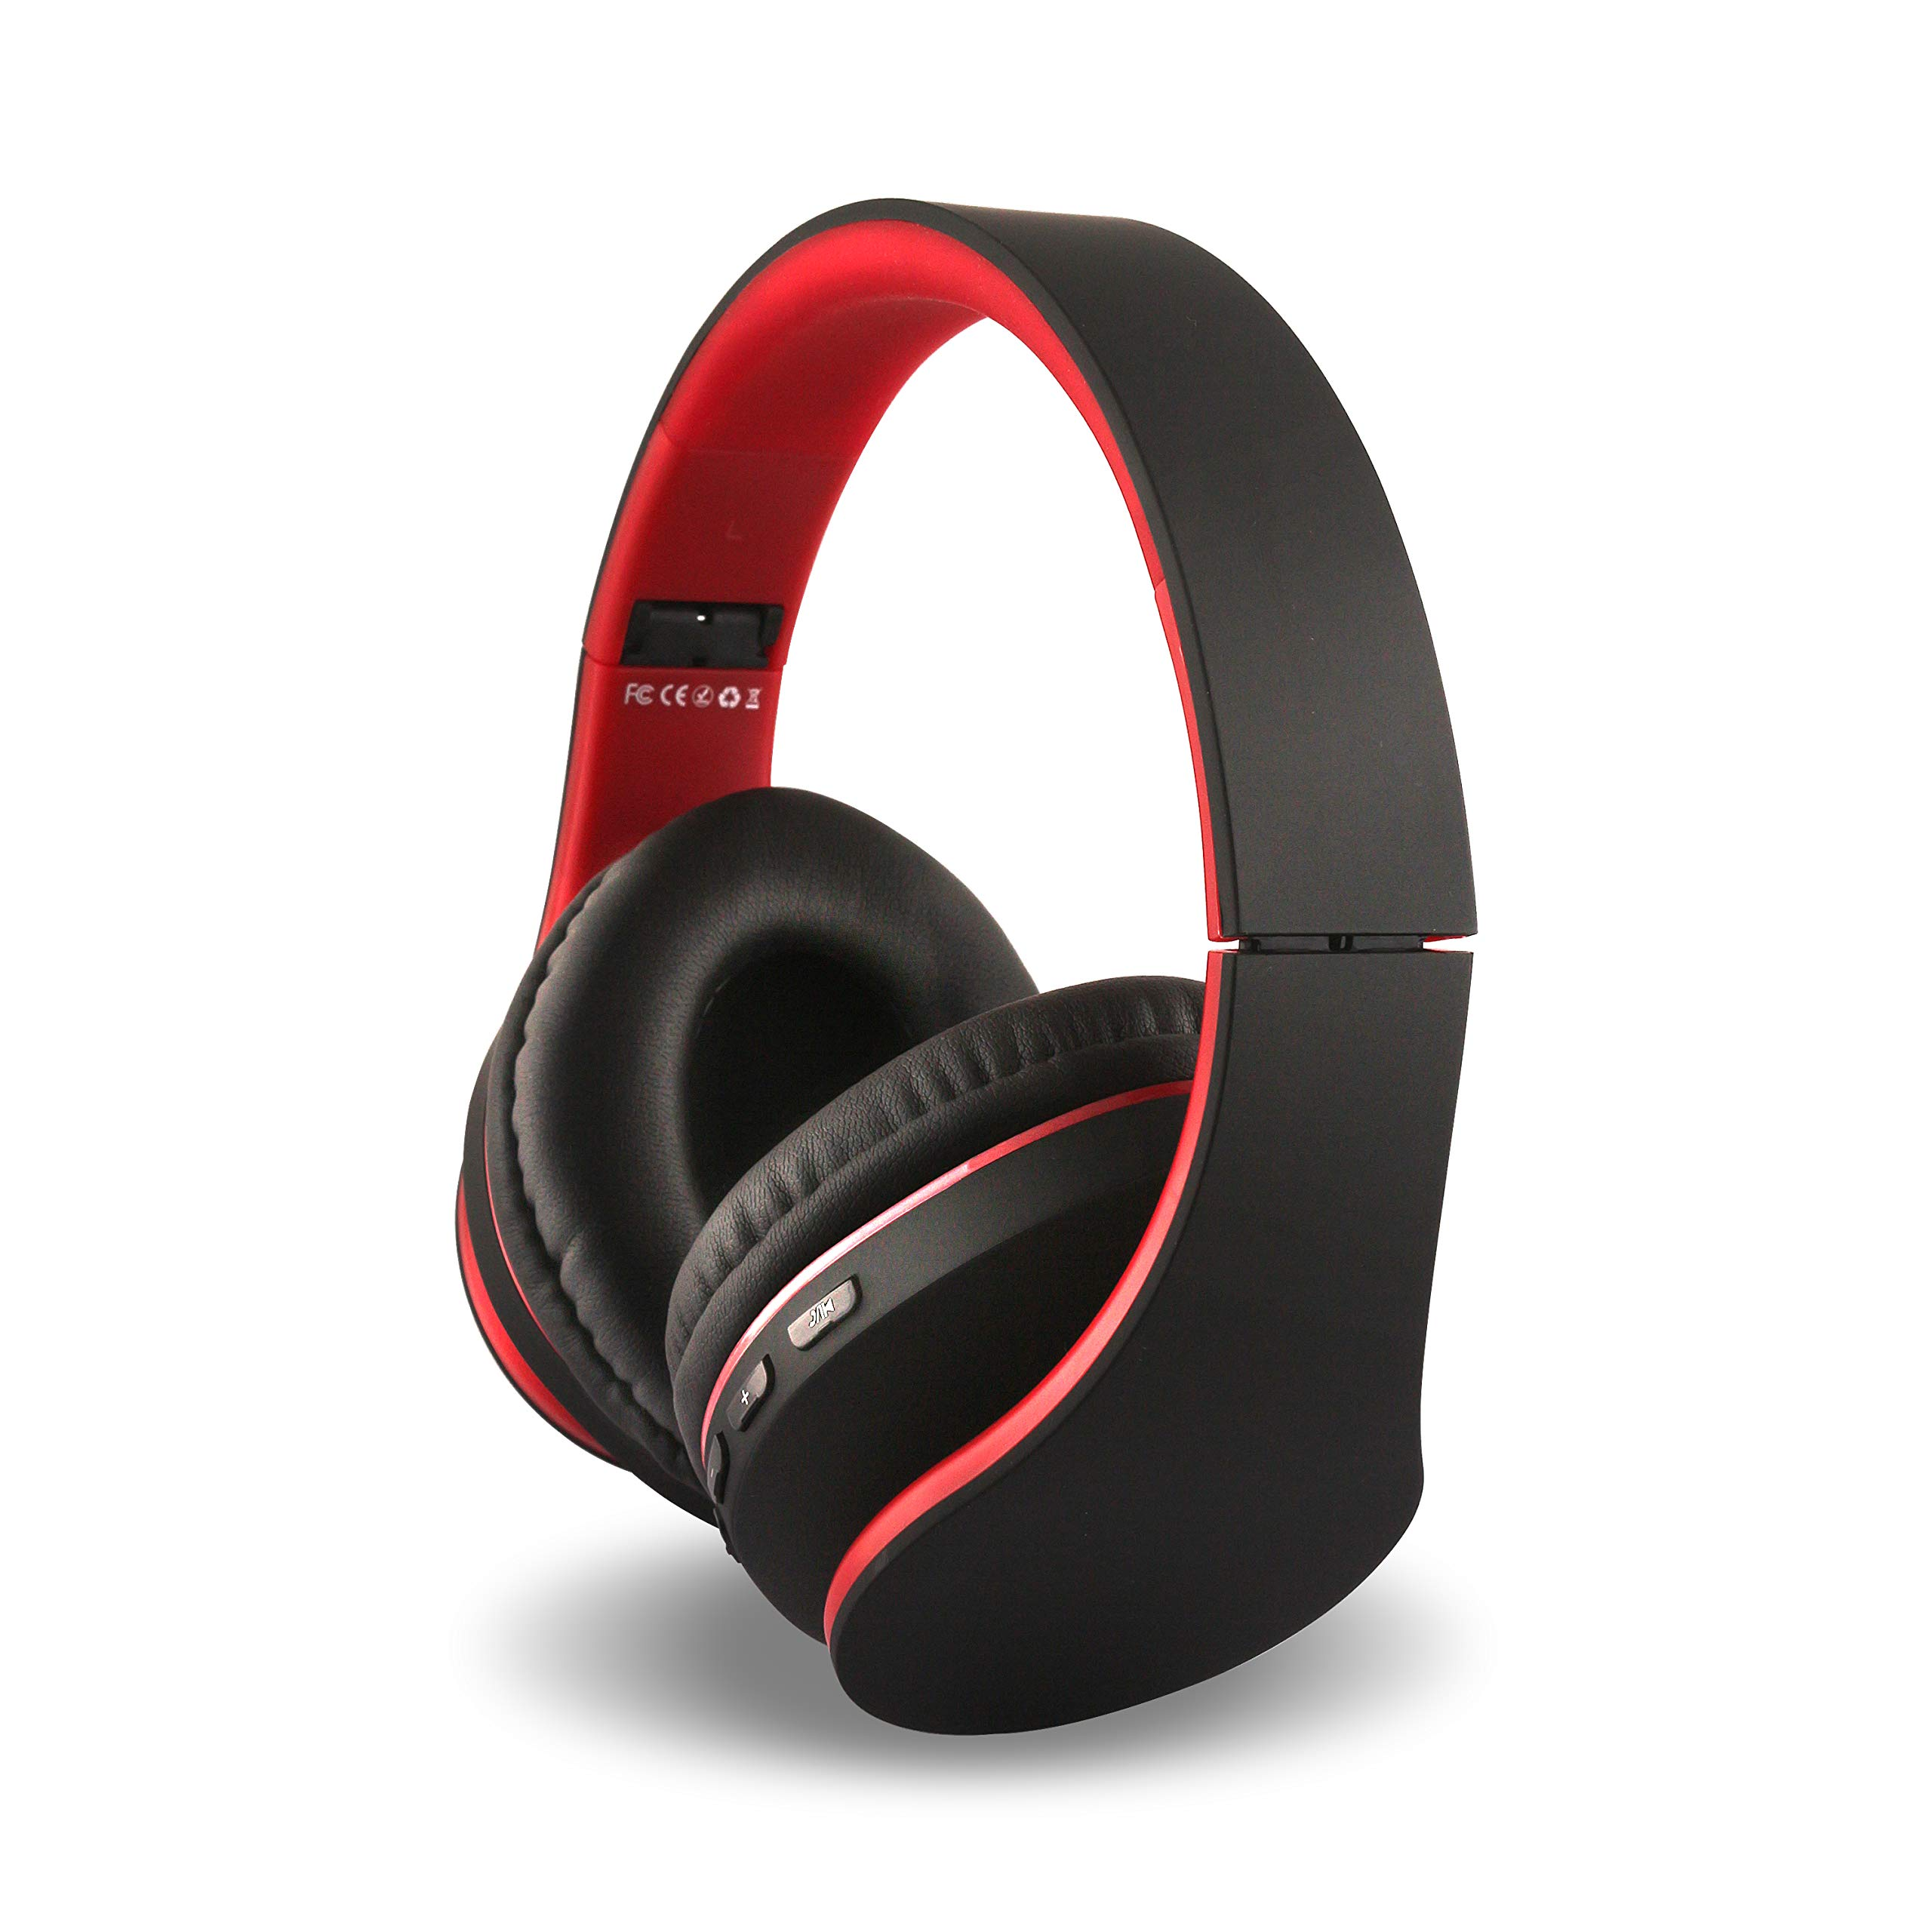 Alltrum Over-Ear Headphones,Hi-Fi Stereo Headset,Adjustable Headsets for Traveling/Sports/Relaxation,Foldable Headphones with Microphone and Music Playback for most of Smartphones,black&red